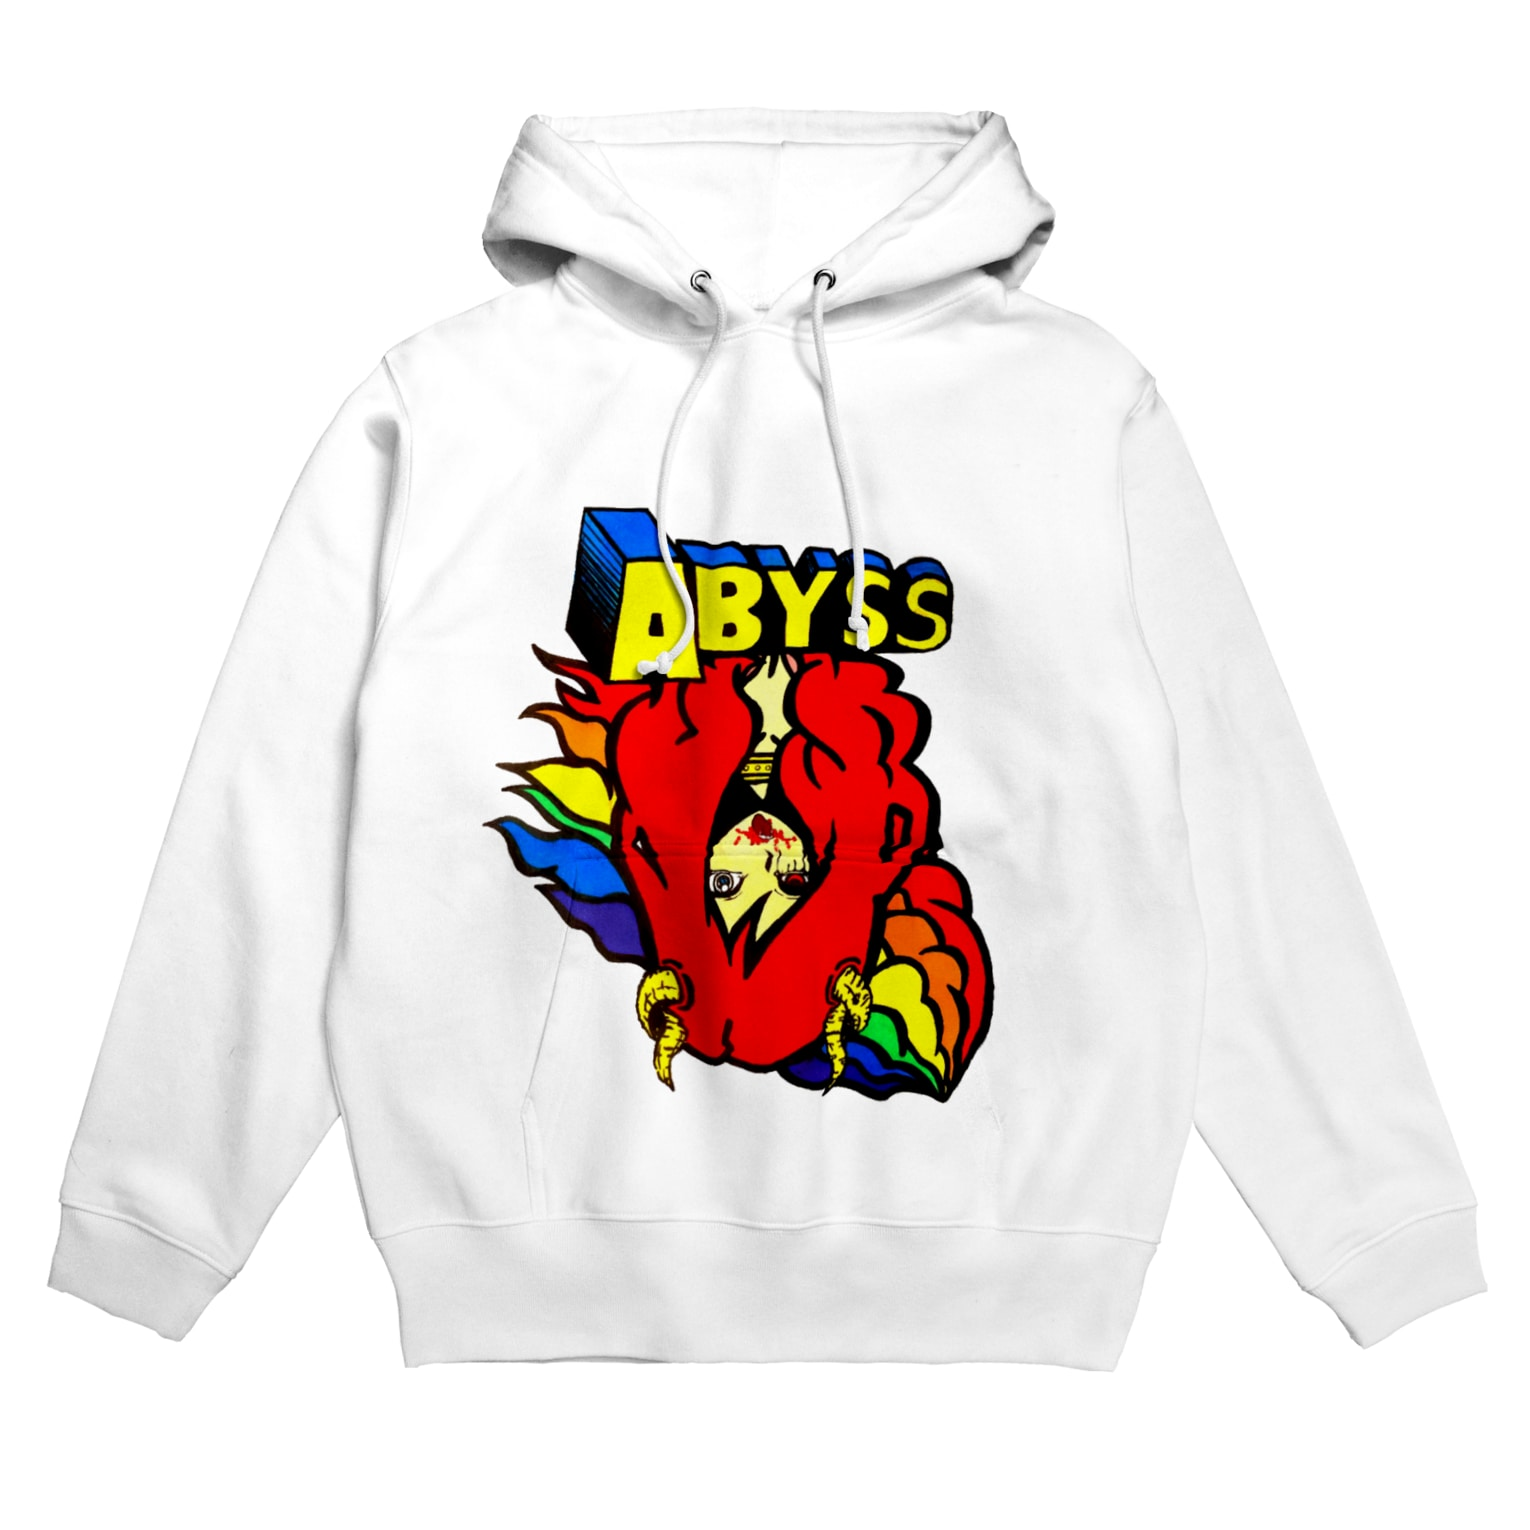 ABYSSのABYSS「rainbow」 Hoodies